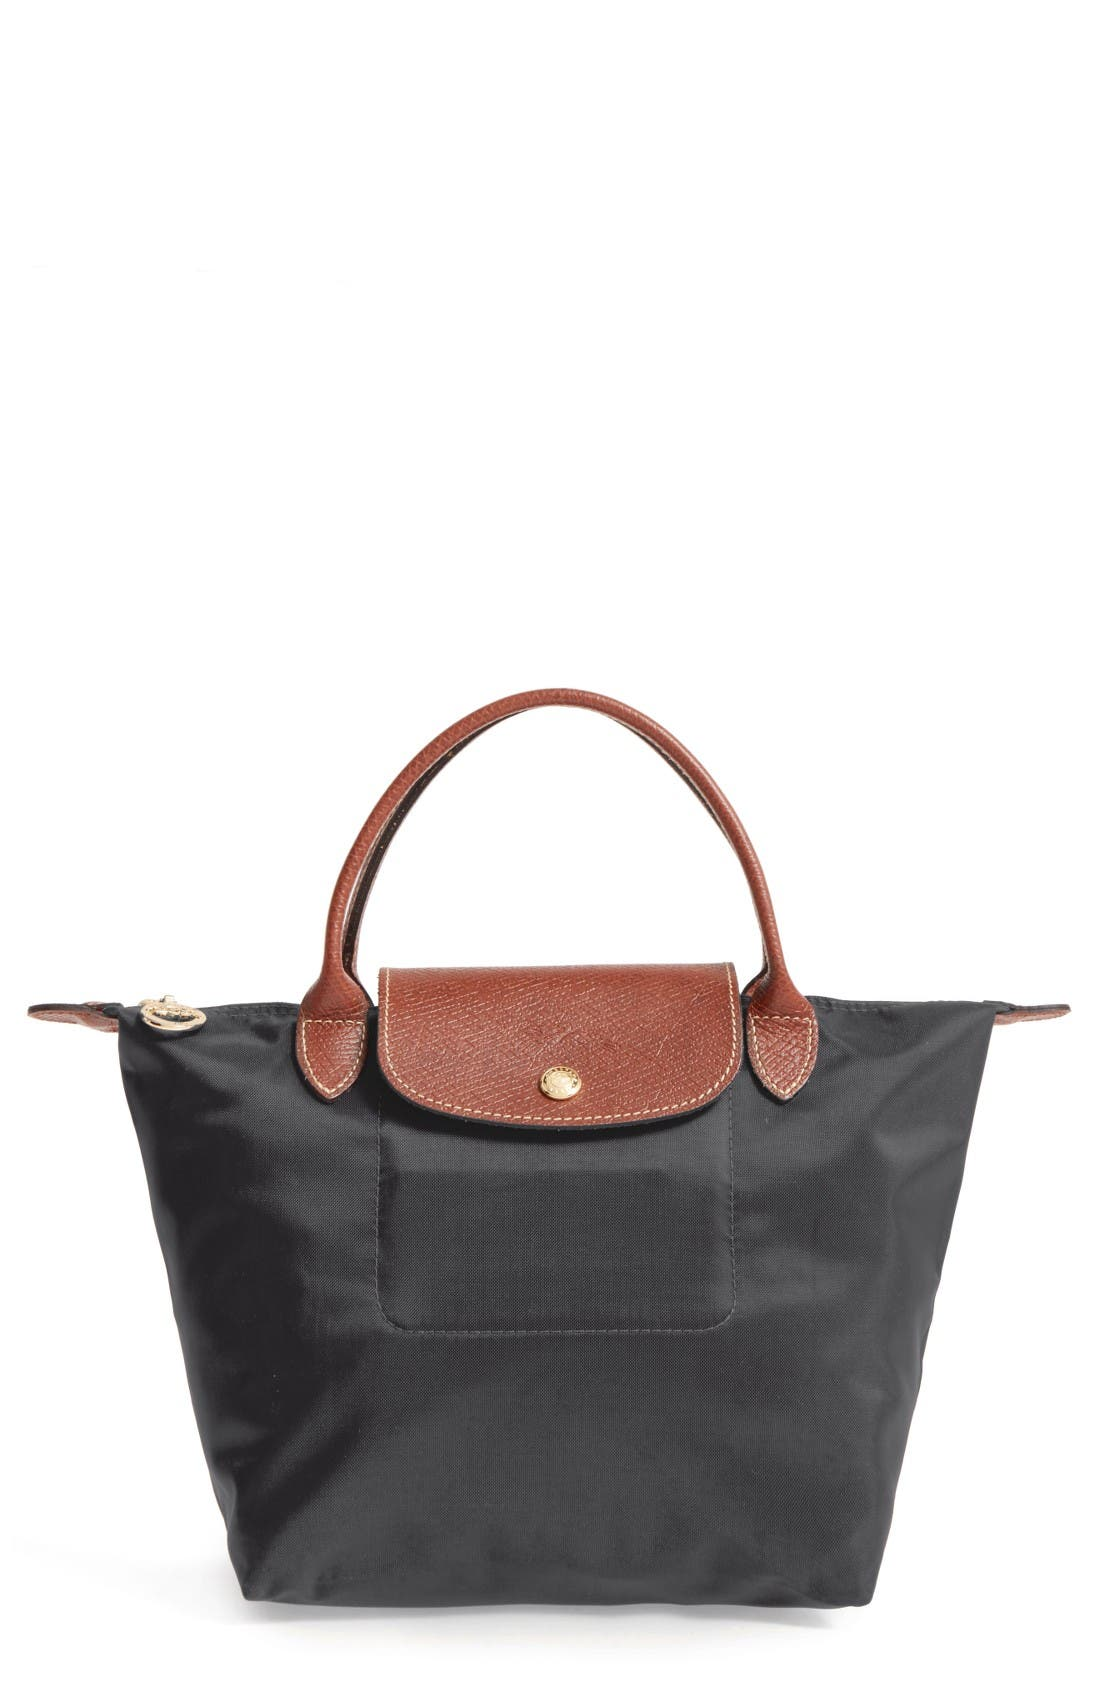 'Small Le Pliage' Top Handle Tote - Black